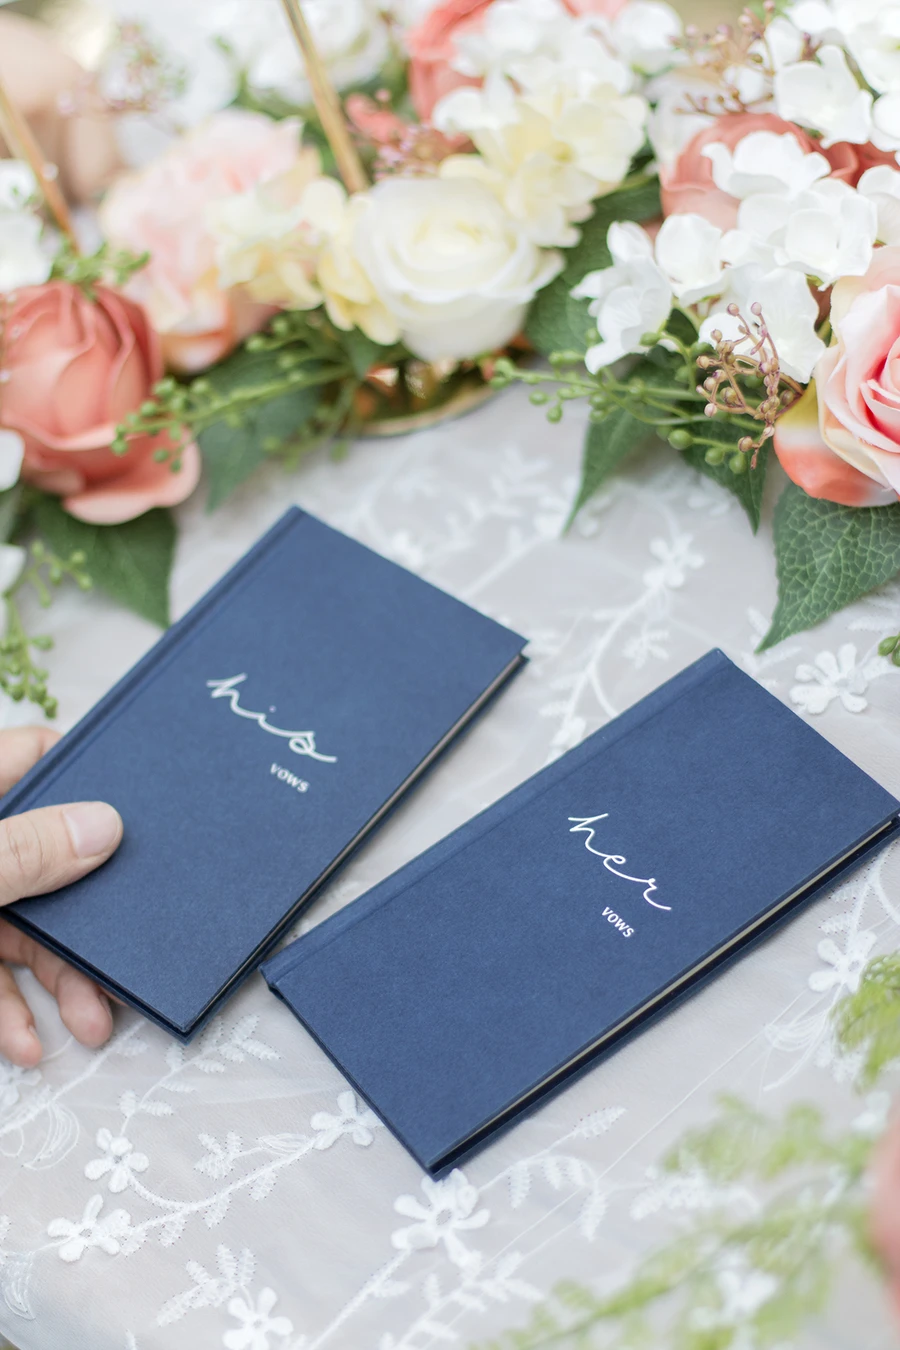 Hardcover Wedding Vow Books His And Her In 2020 Wedding Vow Books Unique Wedding Vows Vow Book